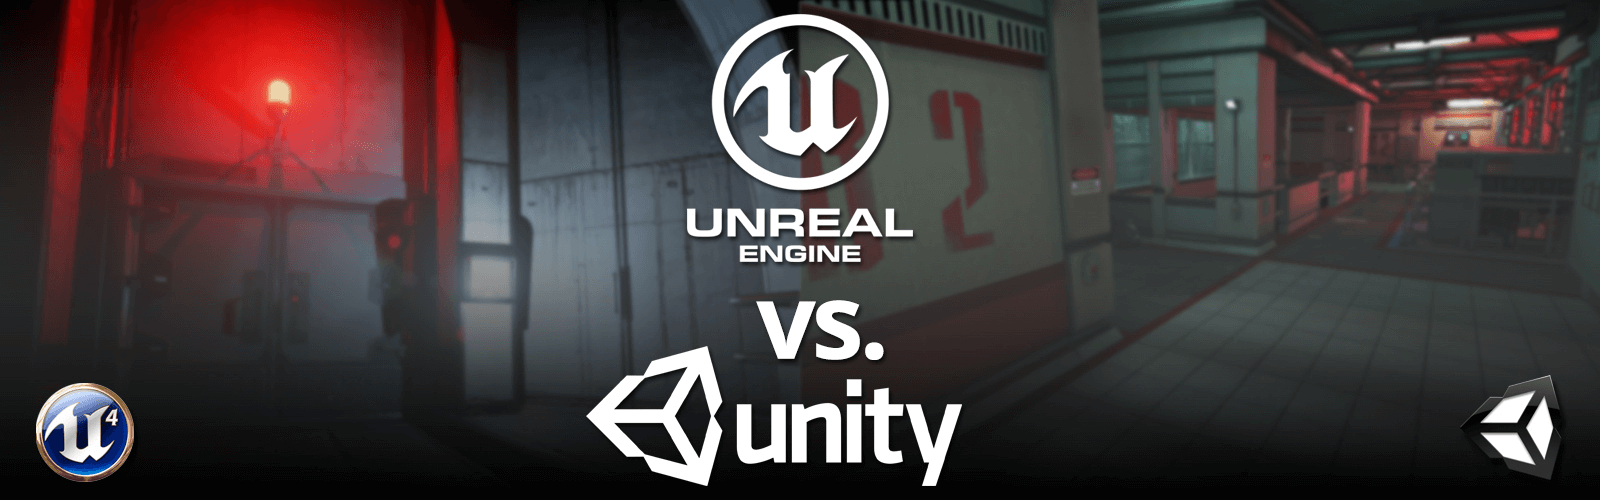 Unity3d vs Unreal Engine 4